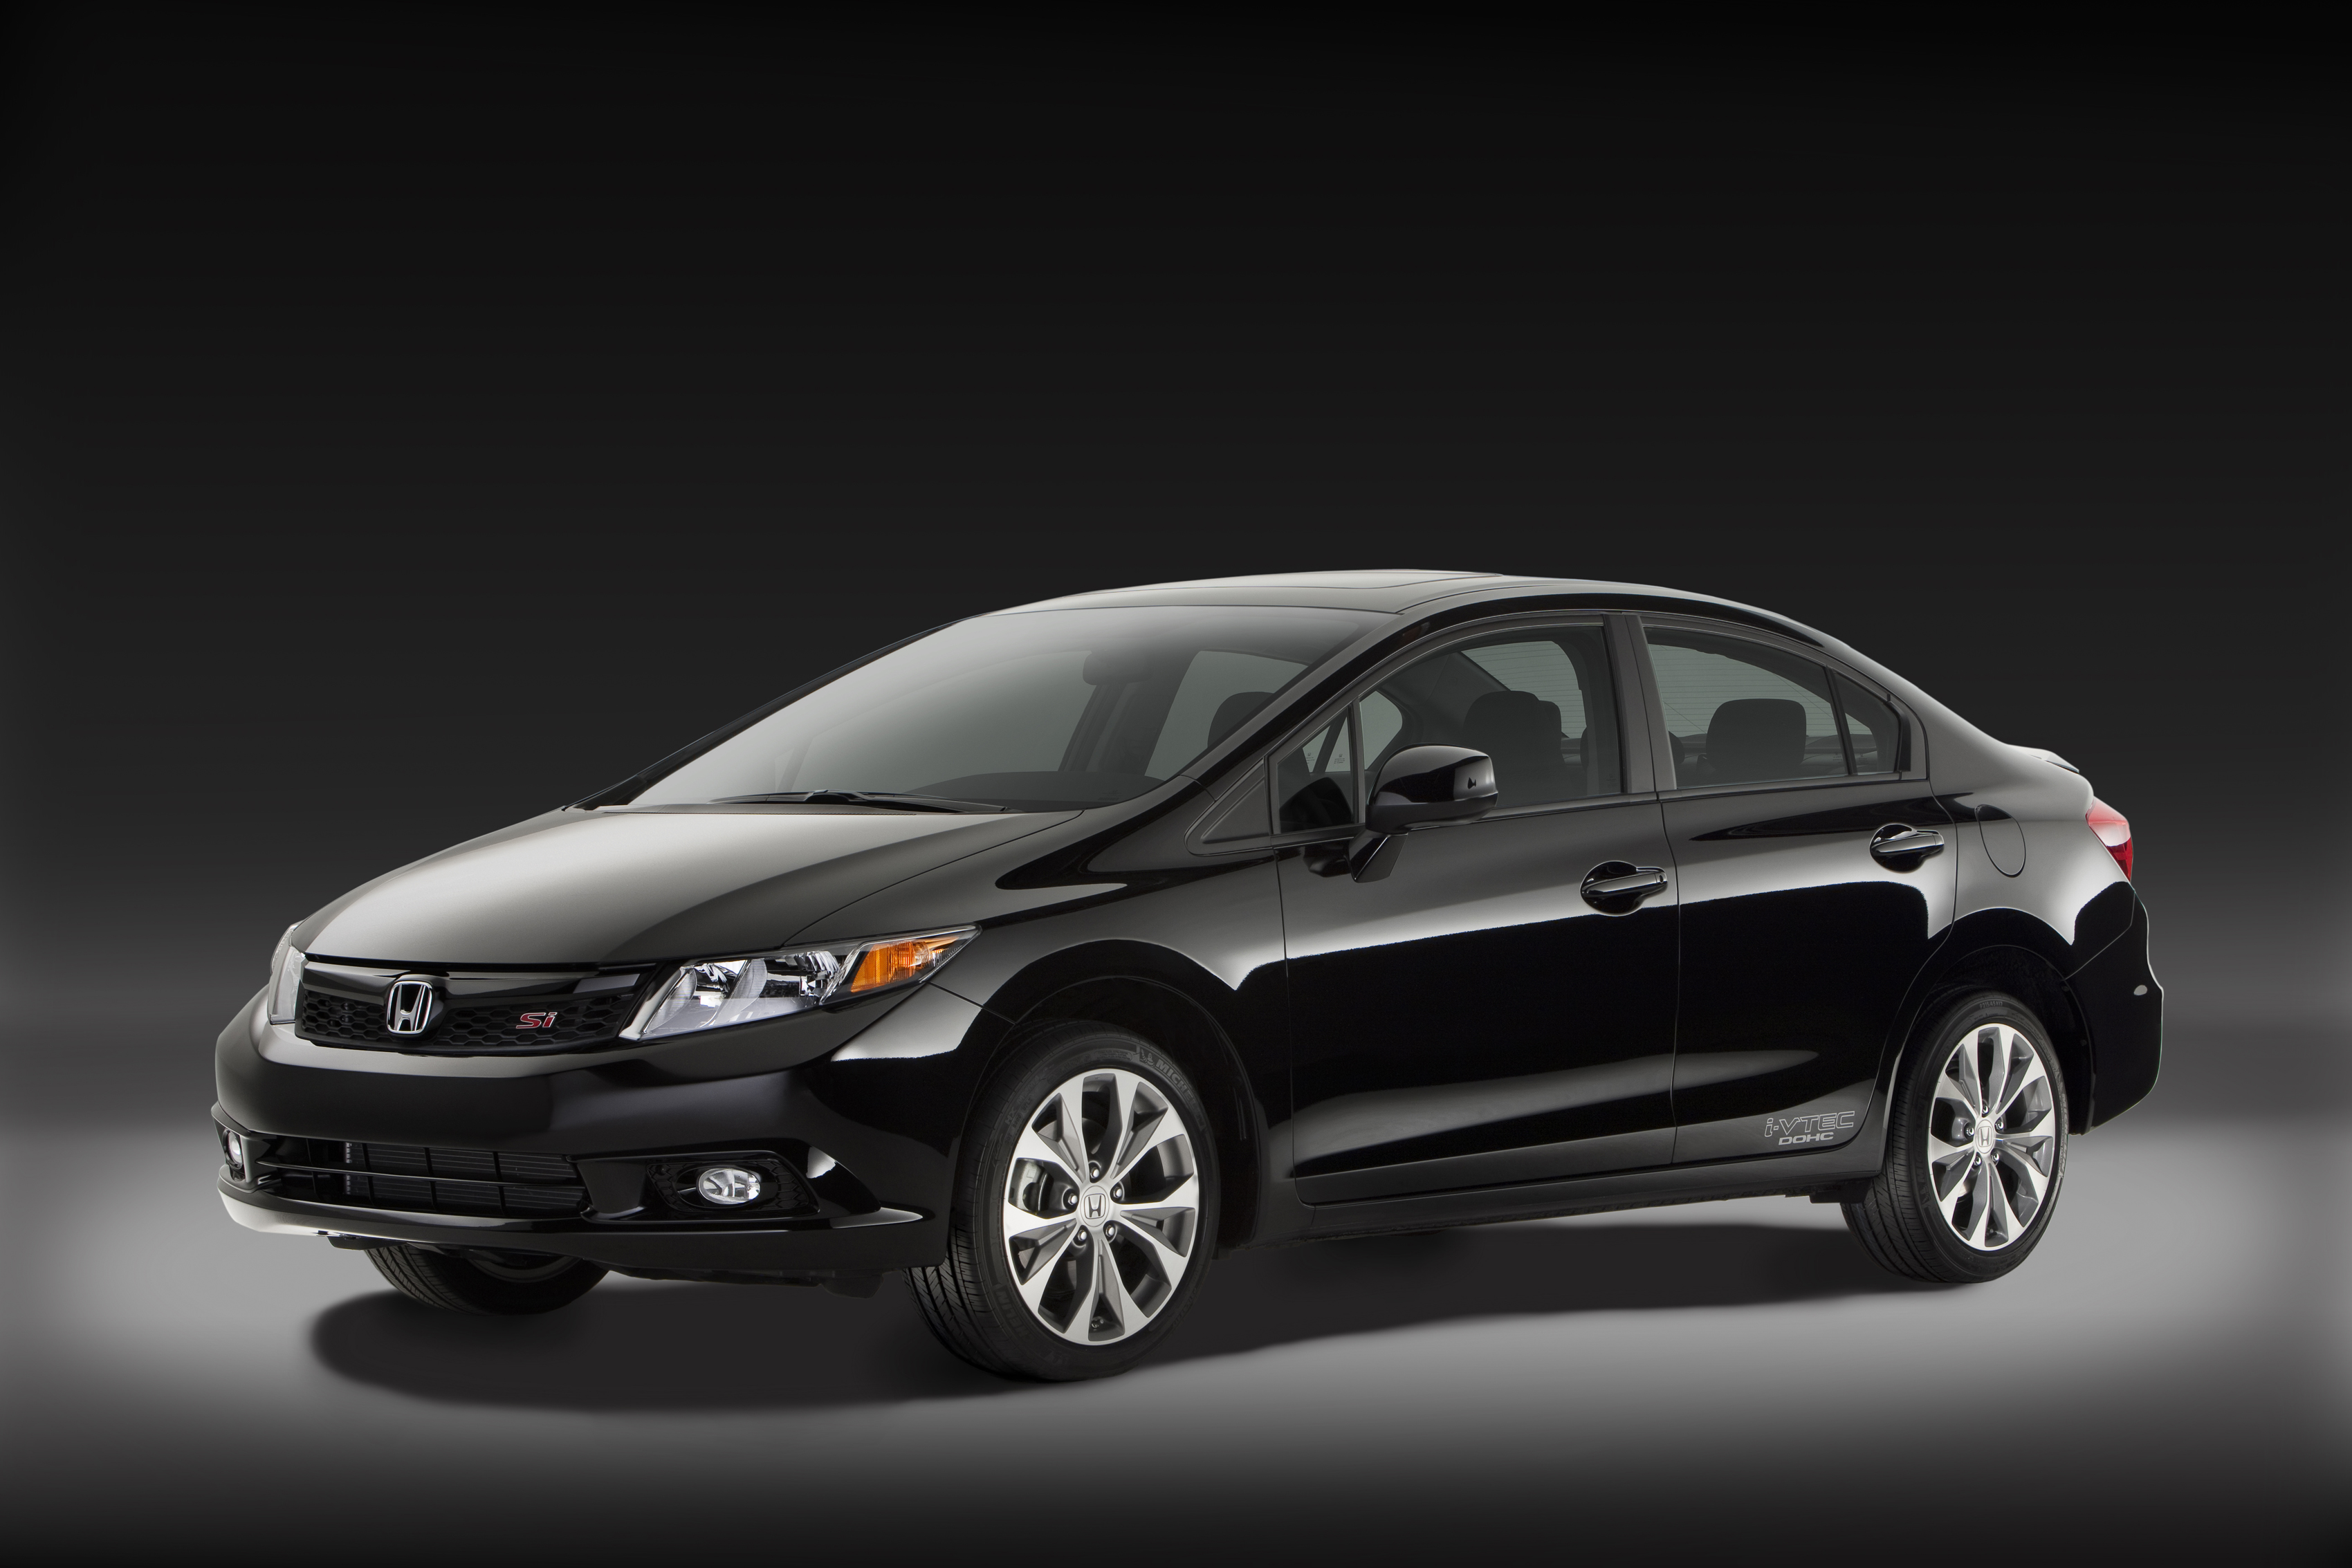 Honda Civic Models >> Redesign: 2012 Honda Civic « Road Reality